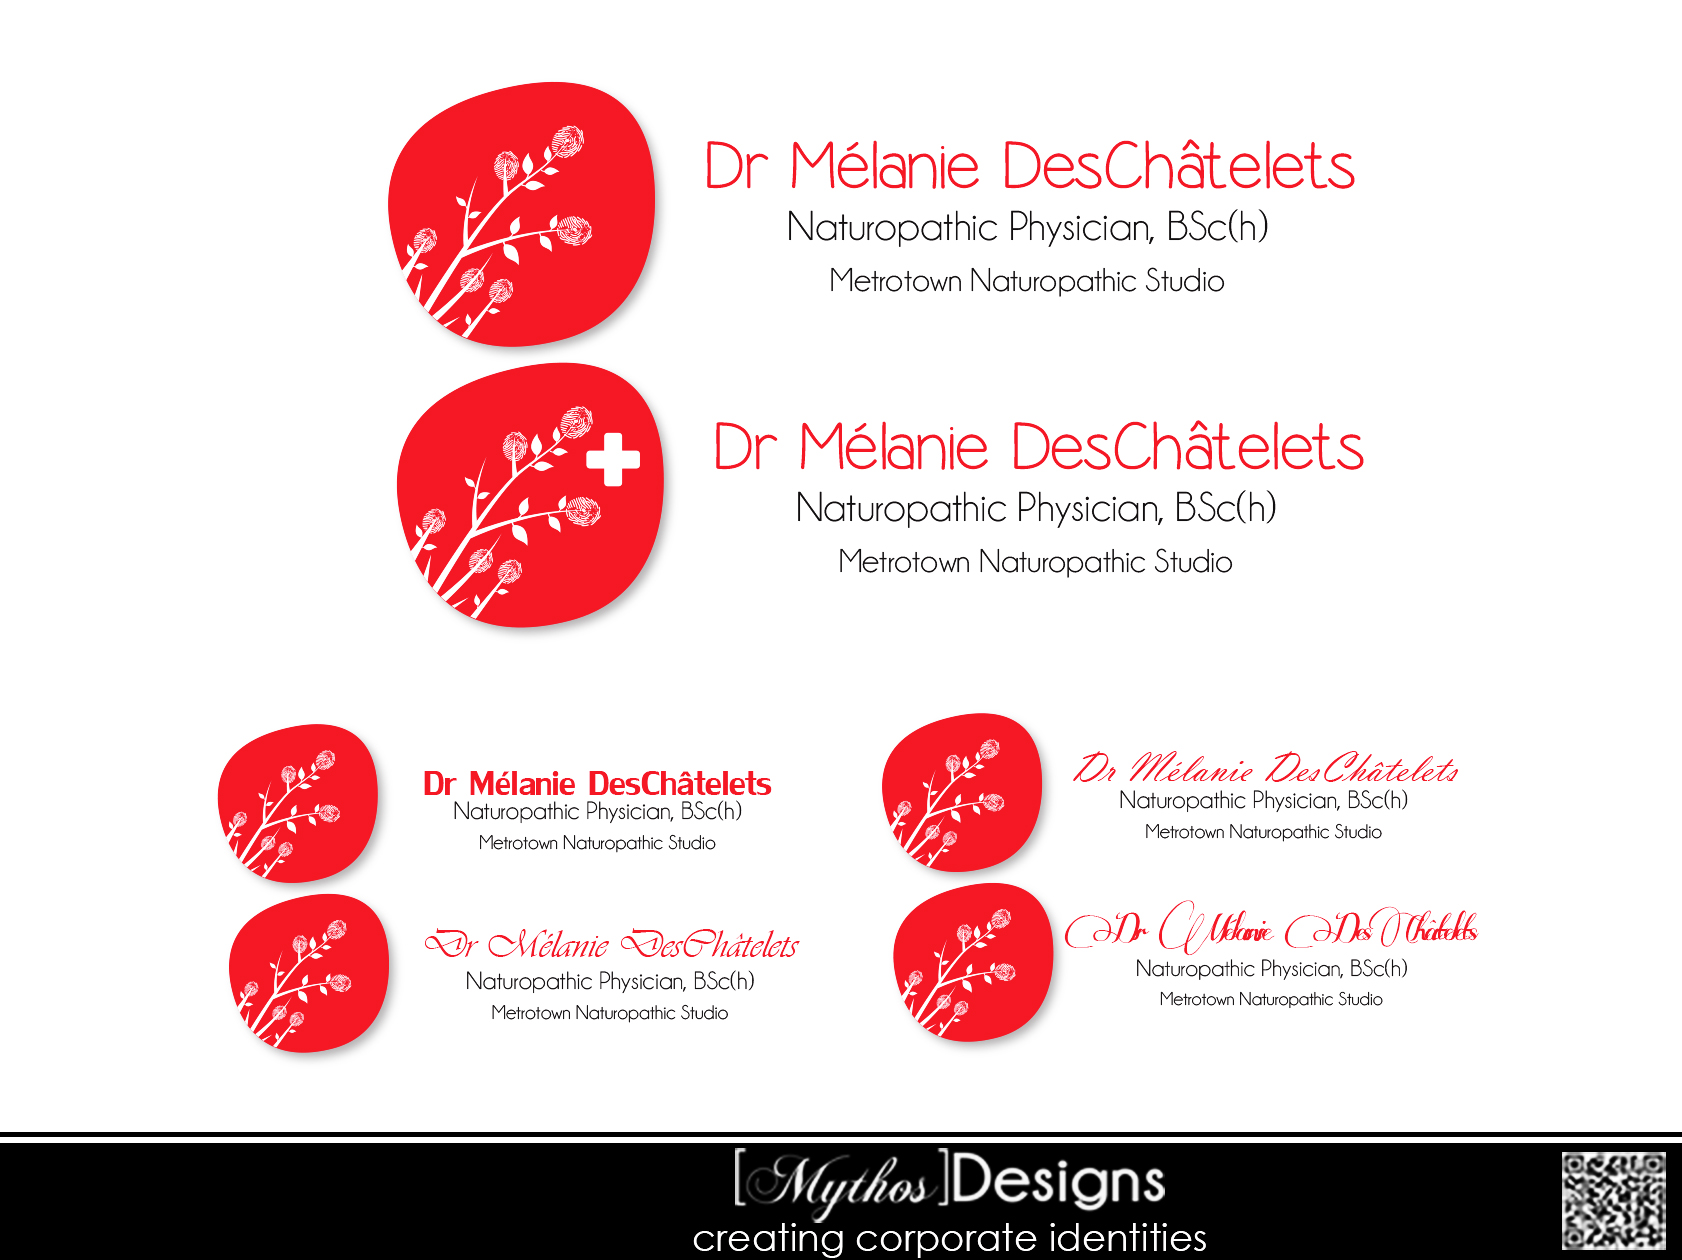 Logo Design by Mythos Designs - Entry No. 95 in the Logo Design Contest Artistic Logo Design for Dr Mélanie DesChâtelets.